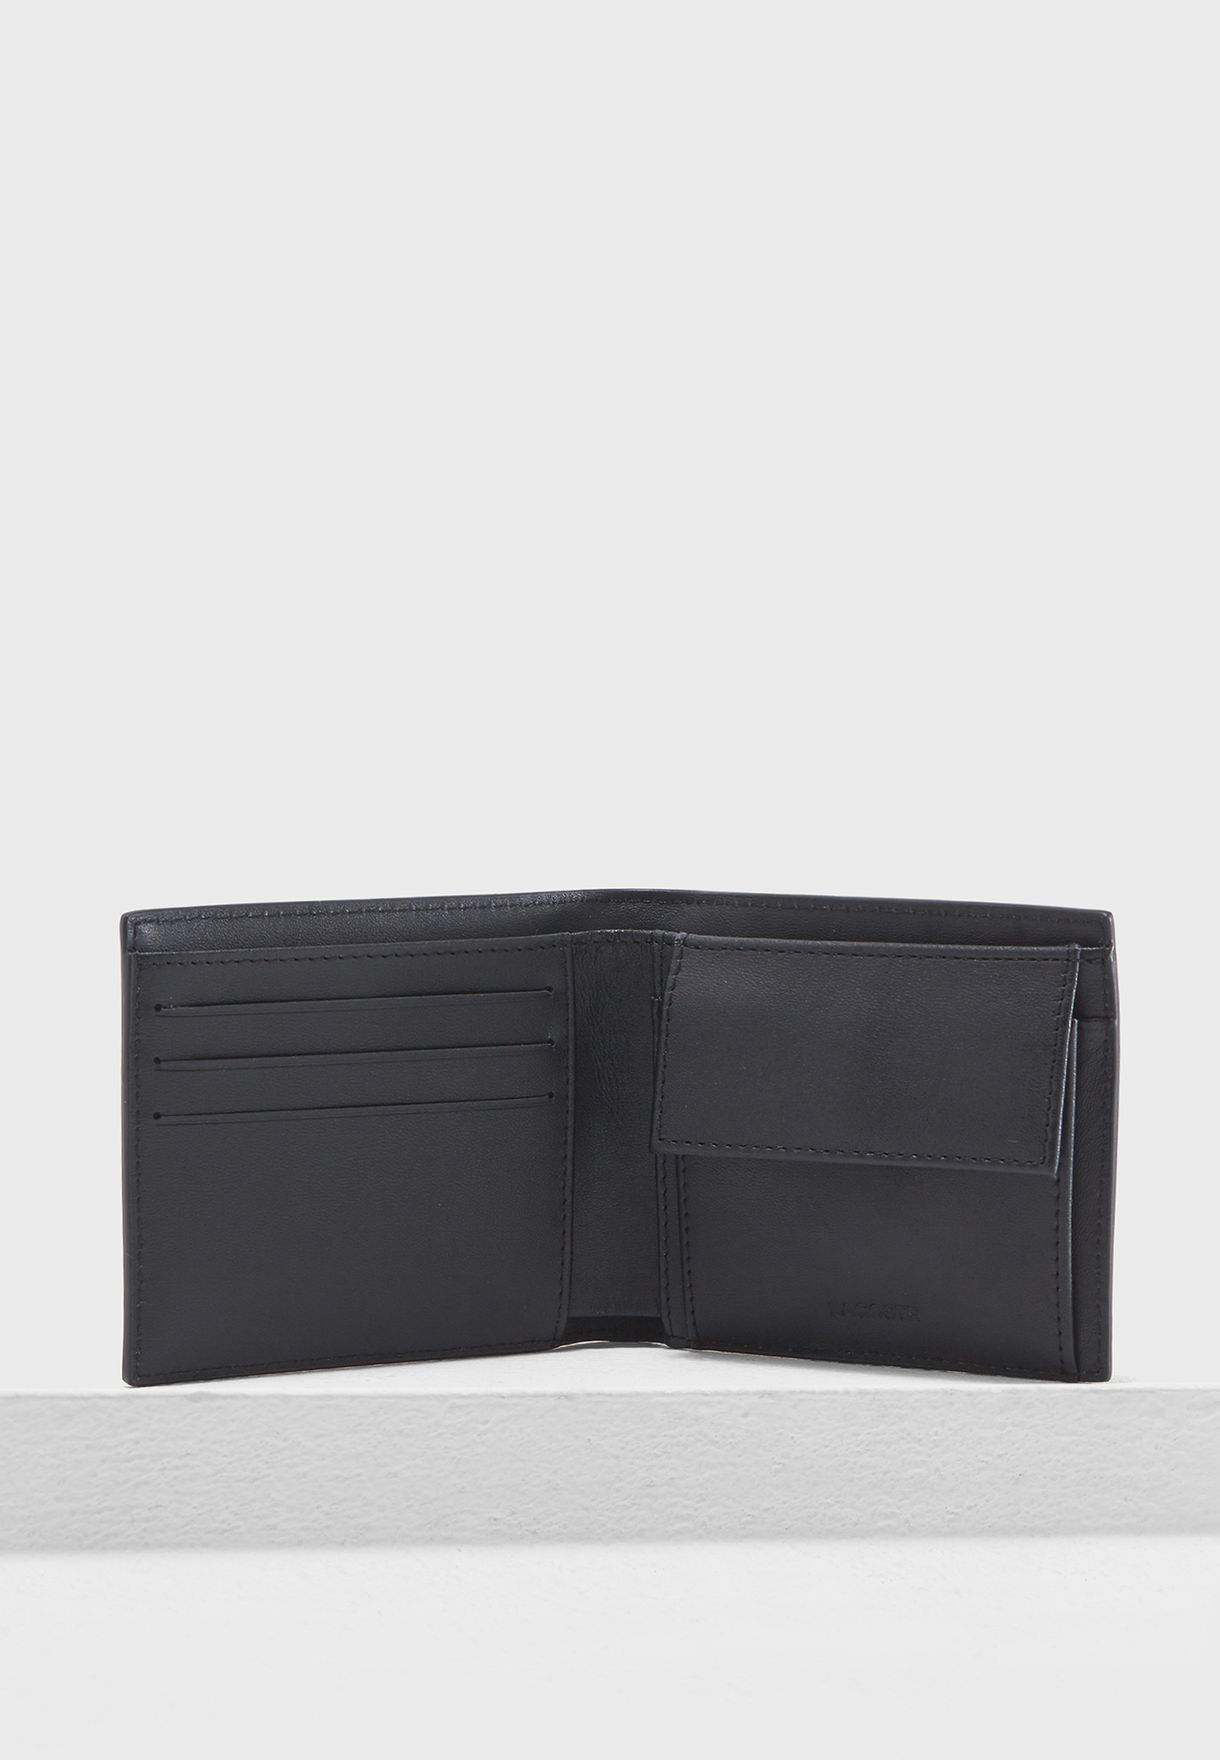 Leather Bifold Pocket Wallet & Cardholder